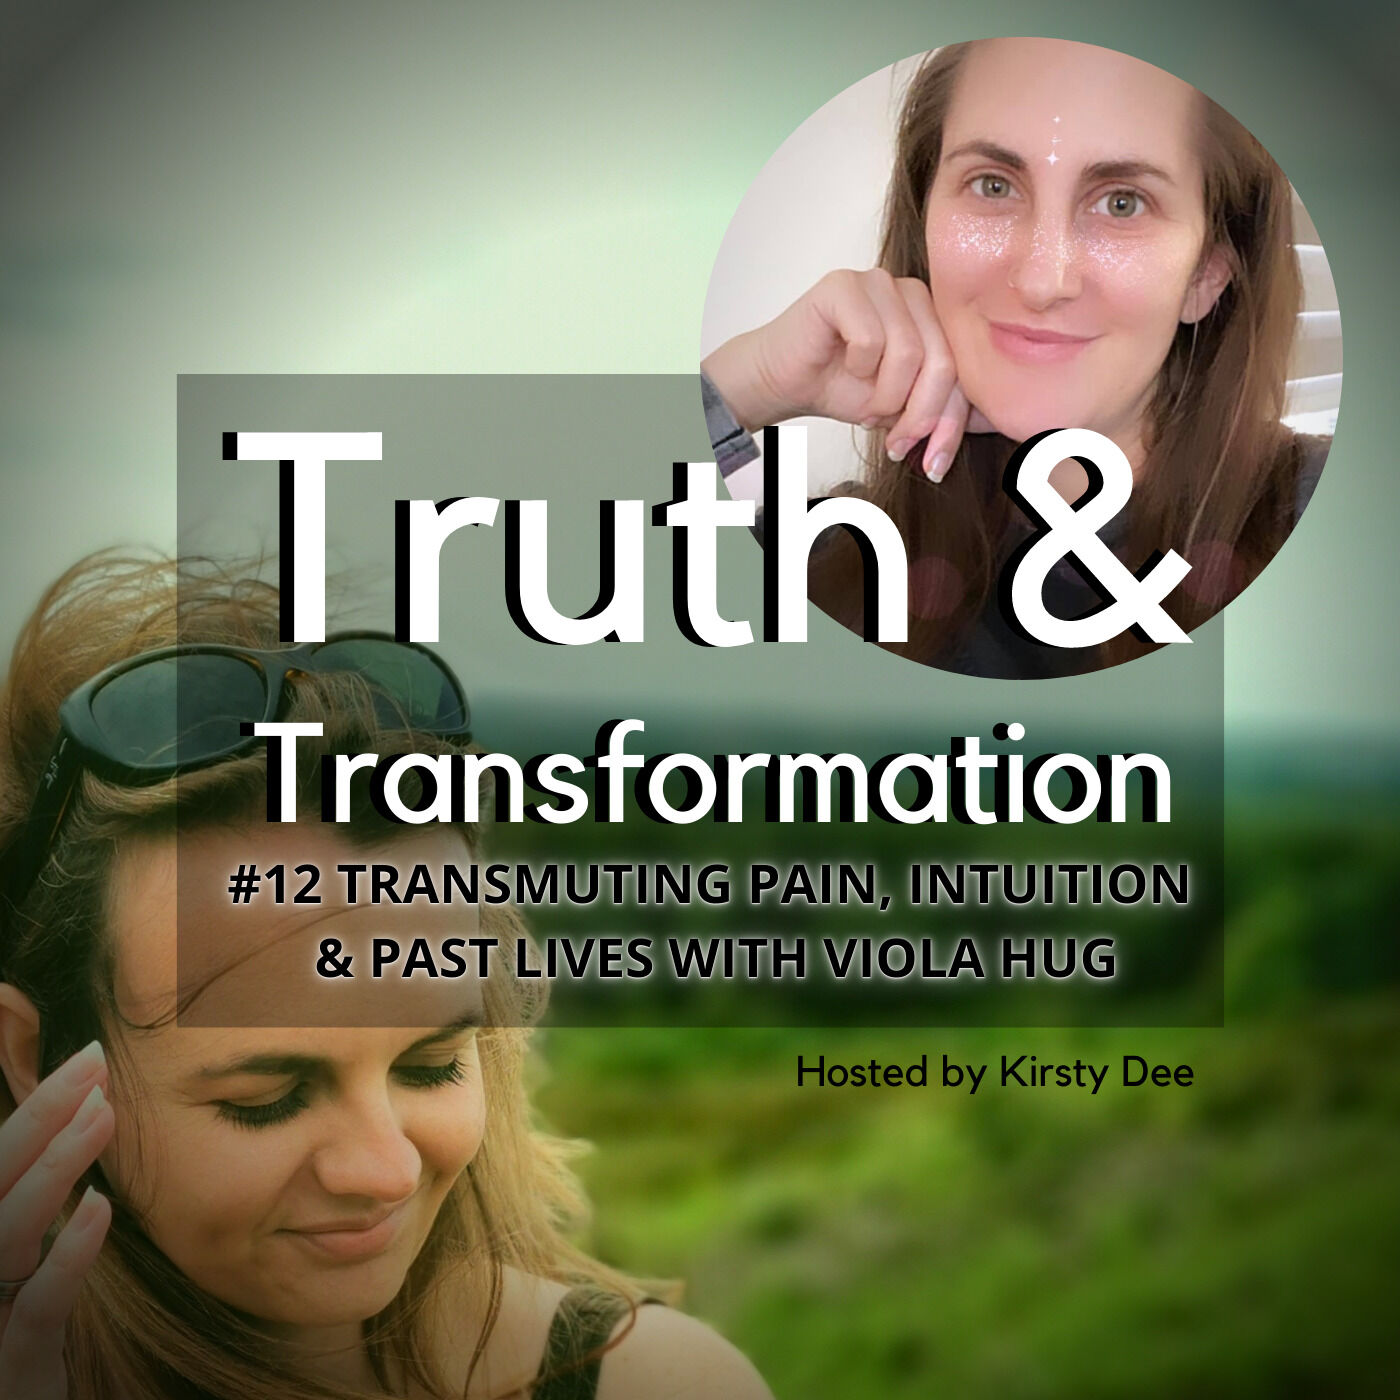 #12 TRANSMUTING PAIN, INTUITION & PAST LIVES WITH VIOLA HUG